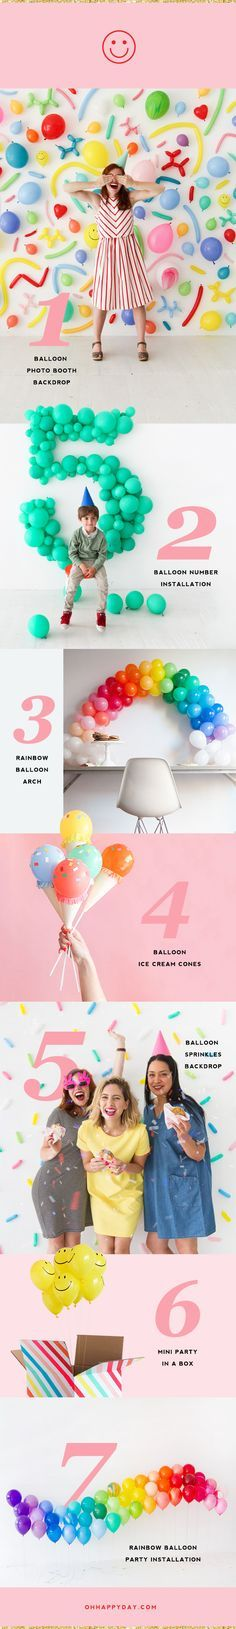 Insanely awesome balloon backdrop